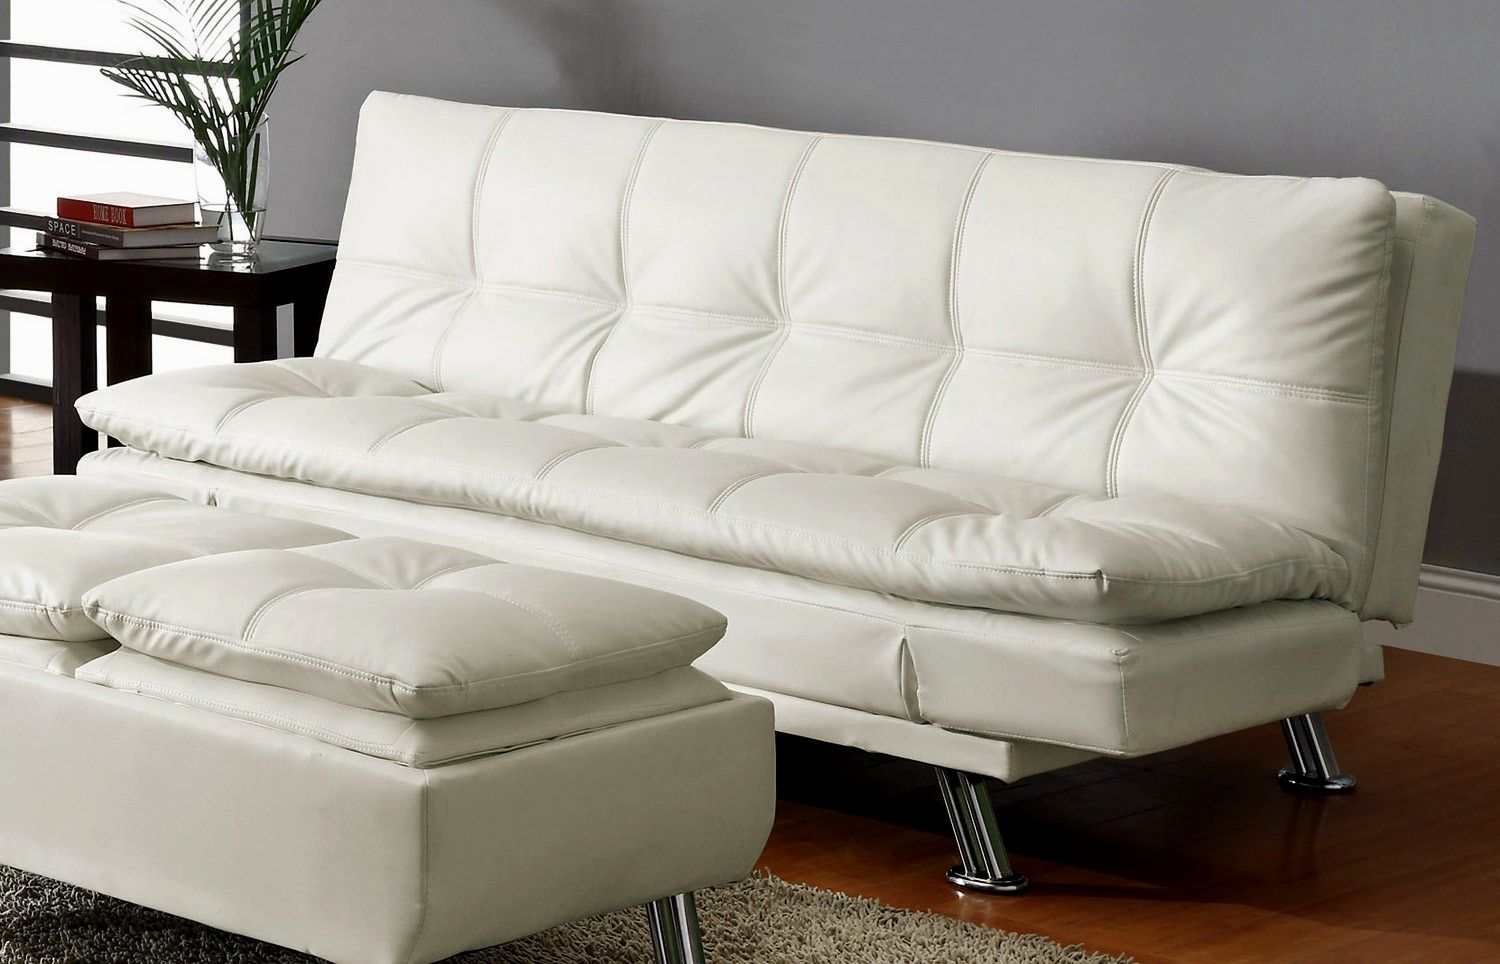 cool sectional sleeper sofas architecture-Finest Sectional Sleeper sofas Online